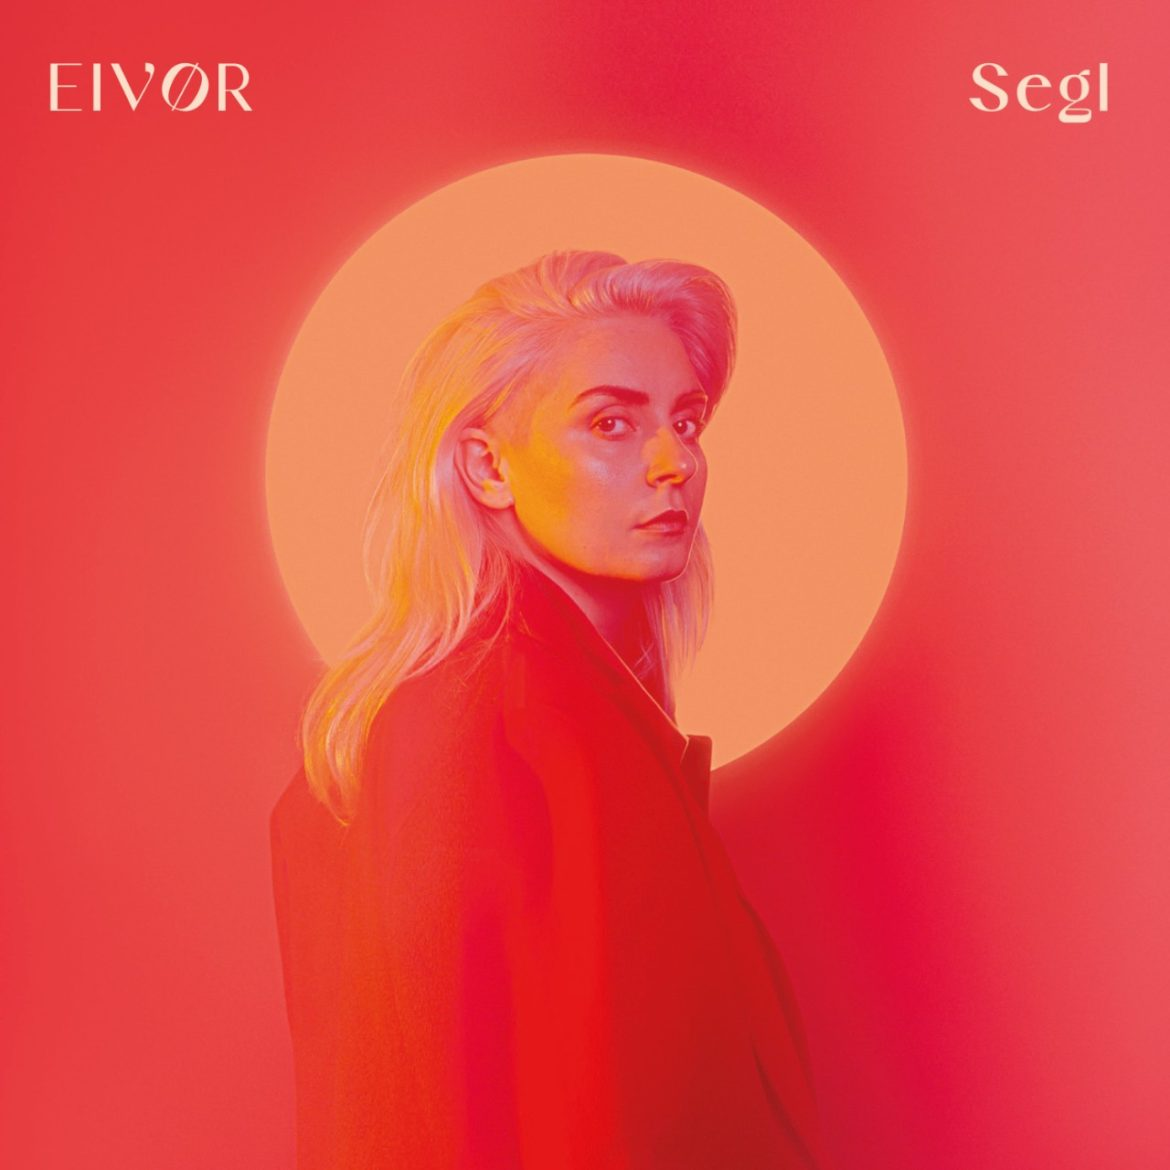 Eivør – Segl (Self-released)